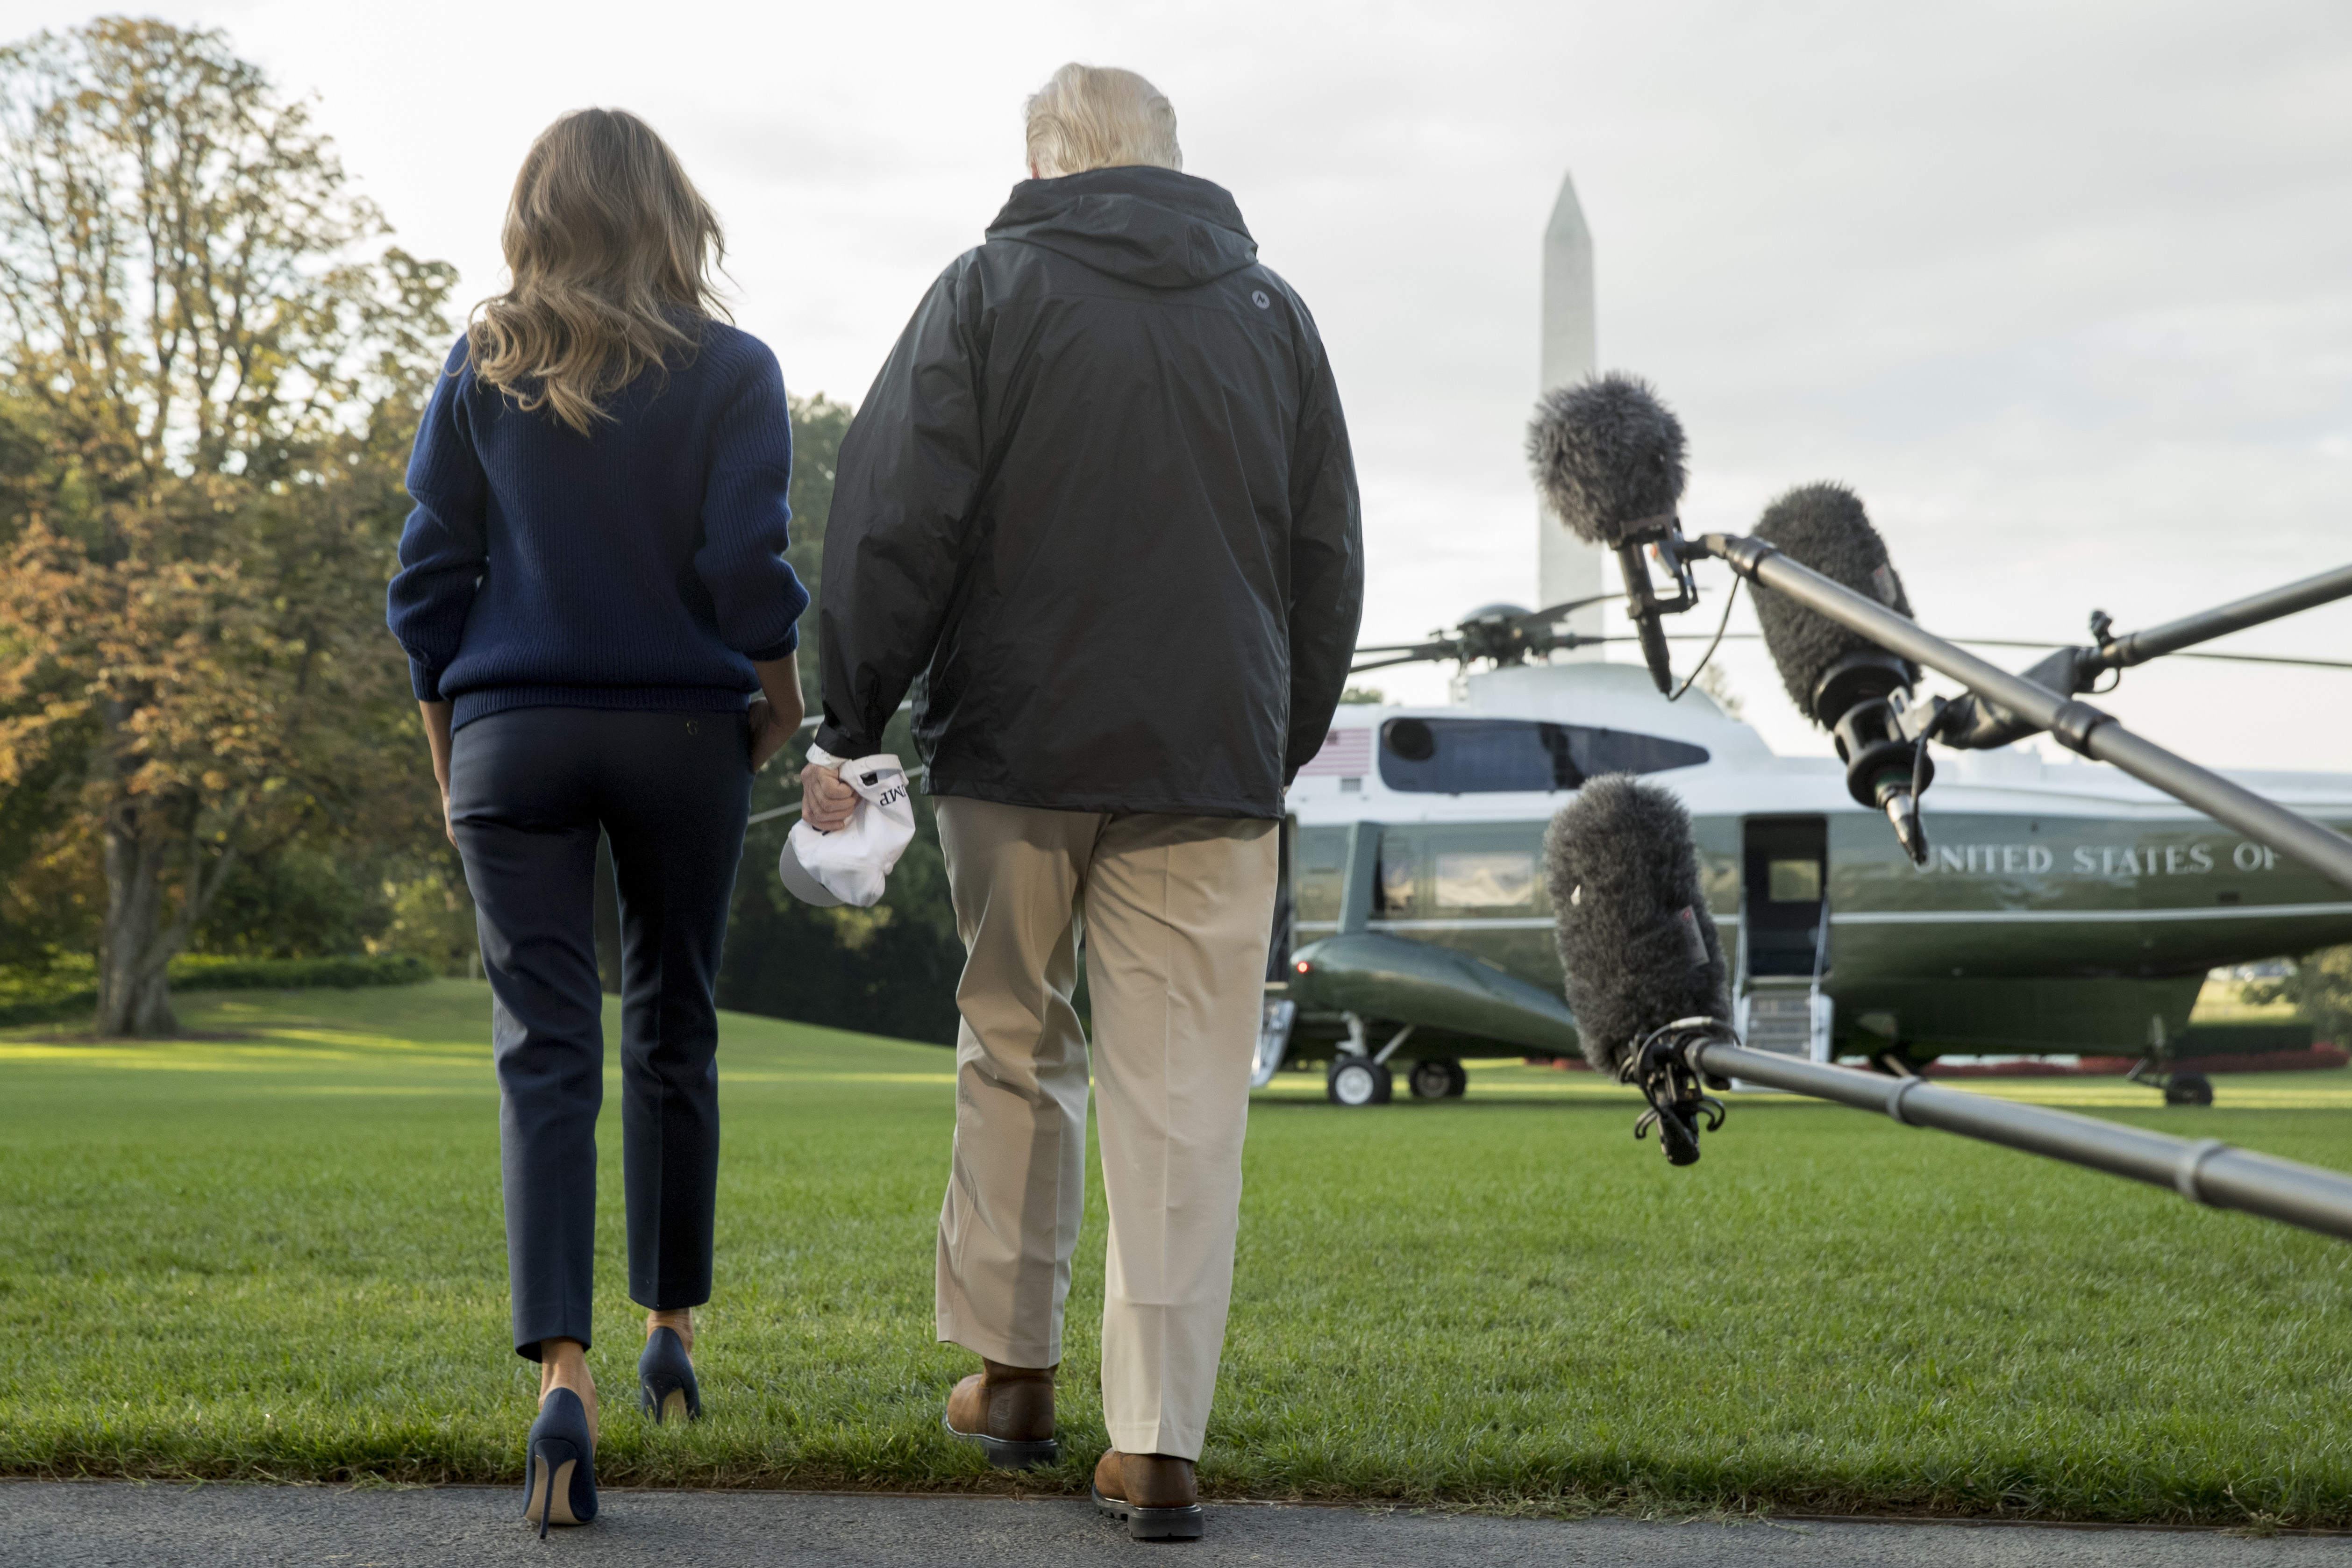 President Donald Trump and first lady Melania Trump walk to board Marine One on the South Lawn of the White House in Washington, Tuesday, Oct. 3, 2017, for a short trip to Andrews Air Force Base, Md. and then on to Puerto Rico. (AP Photo/Andrew Harnik)